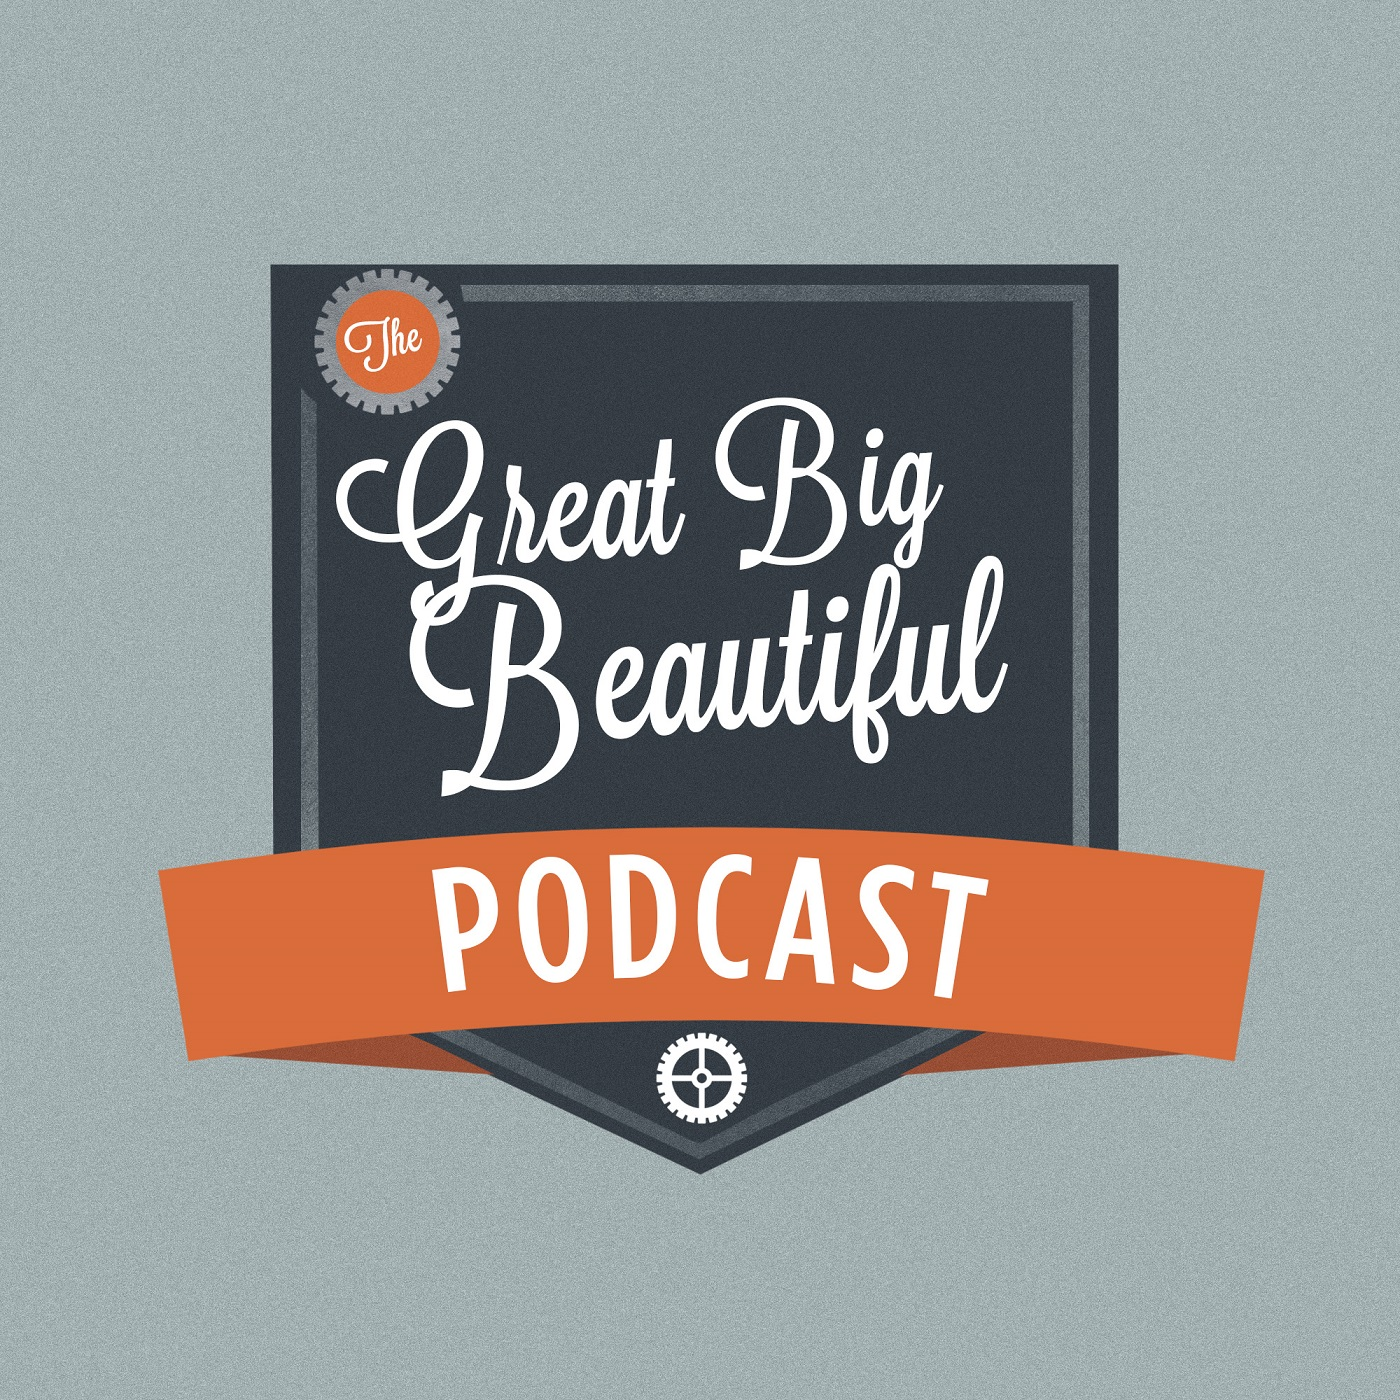 The Great Big Beautiful Podcast